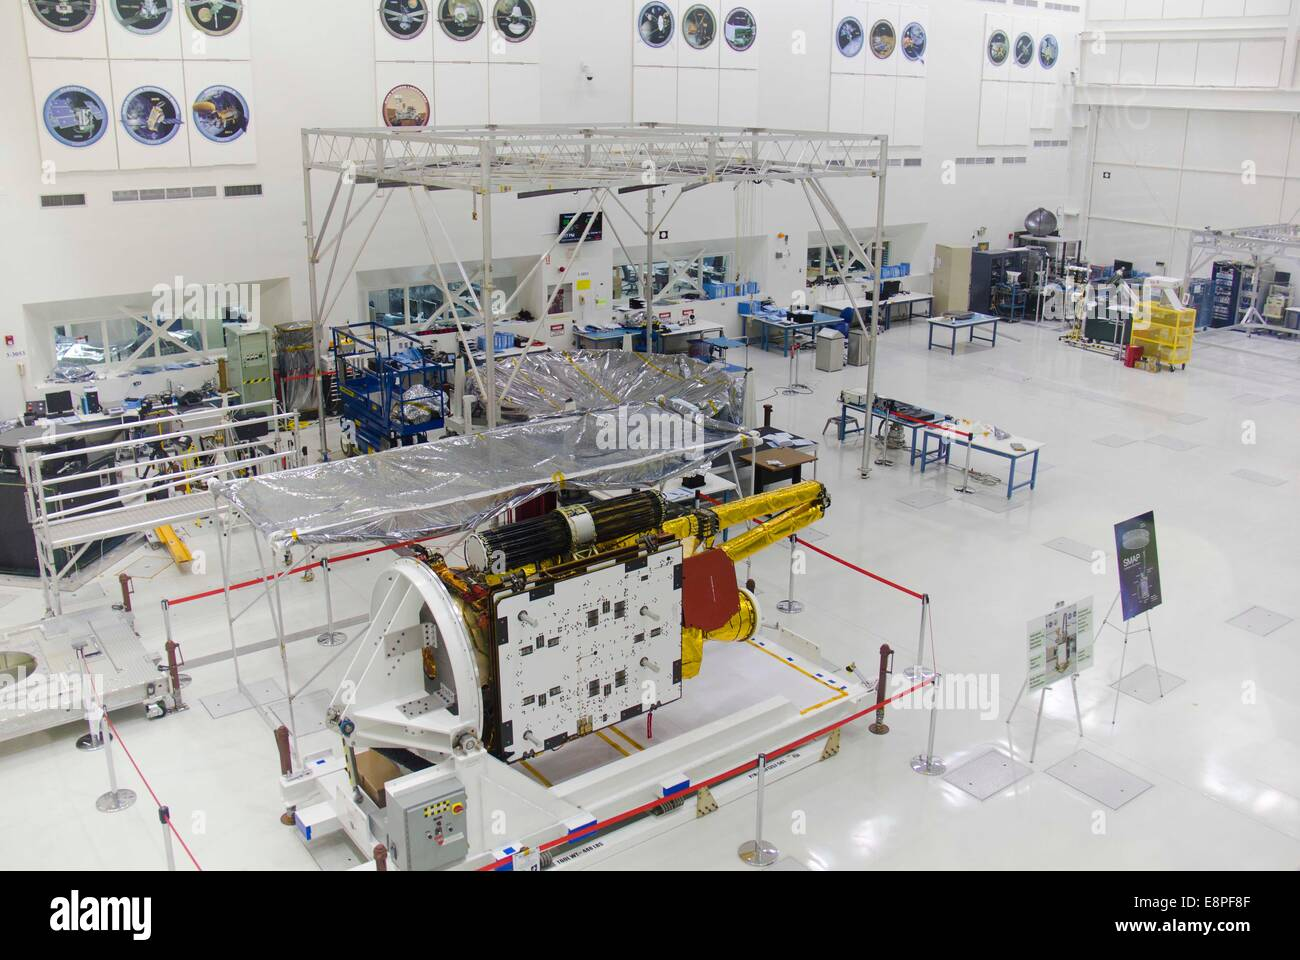 Los Angeles, USA. 12th Oct, 2014. Photo taken on Oct. 12, 2014 shows the spacecraft assembly facility at NASA's - Stock Image